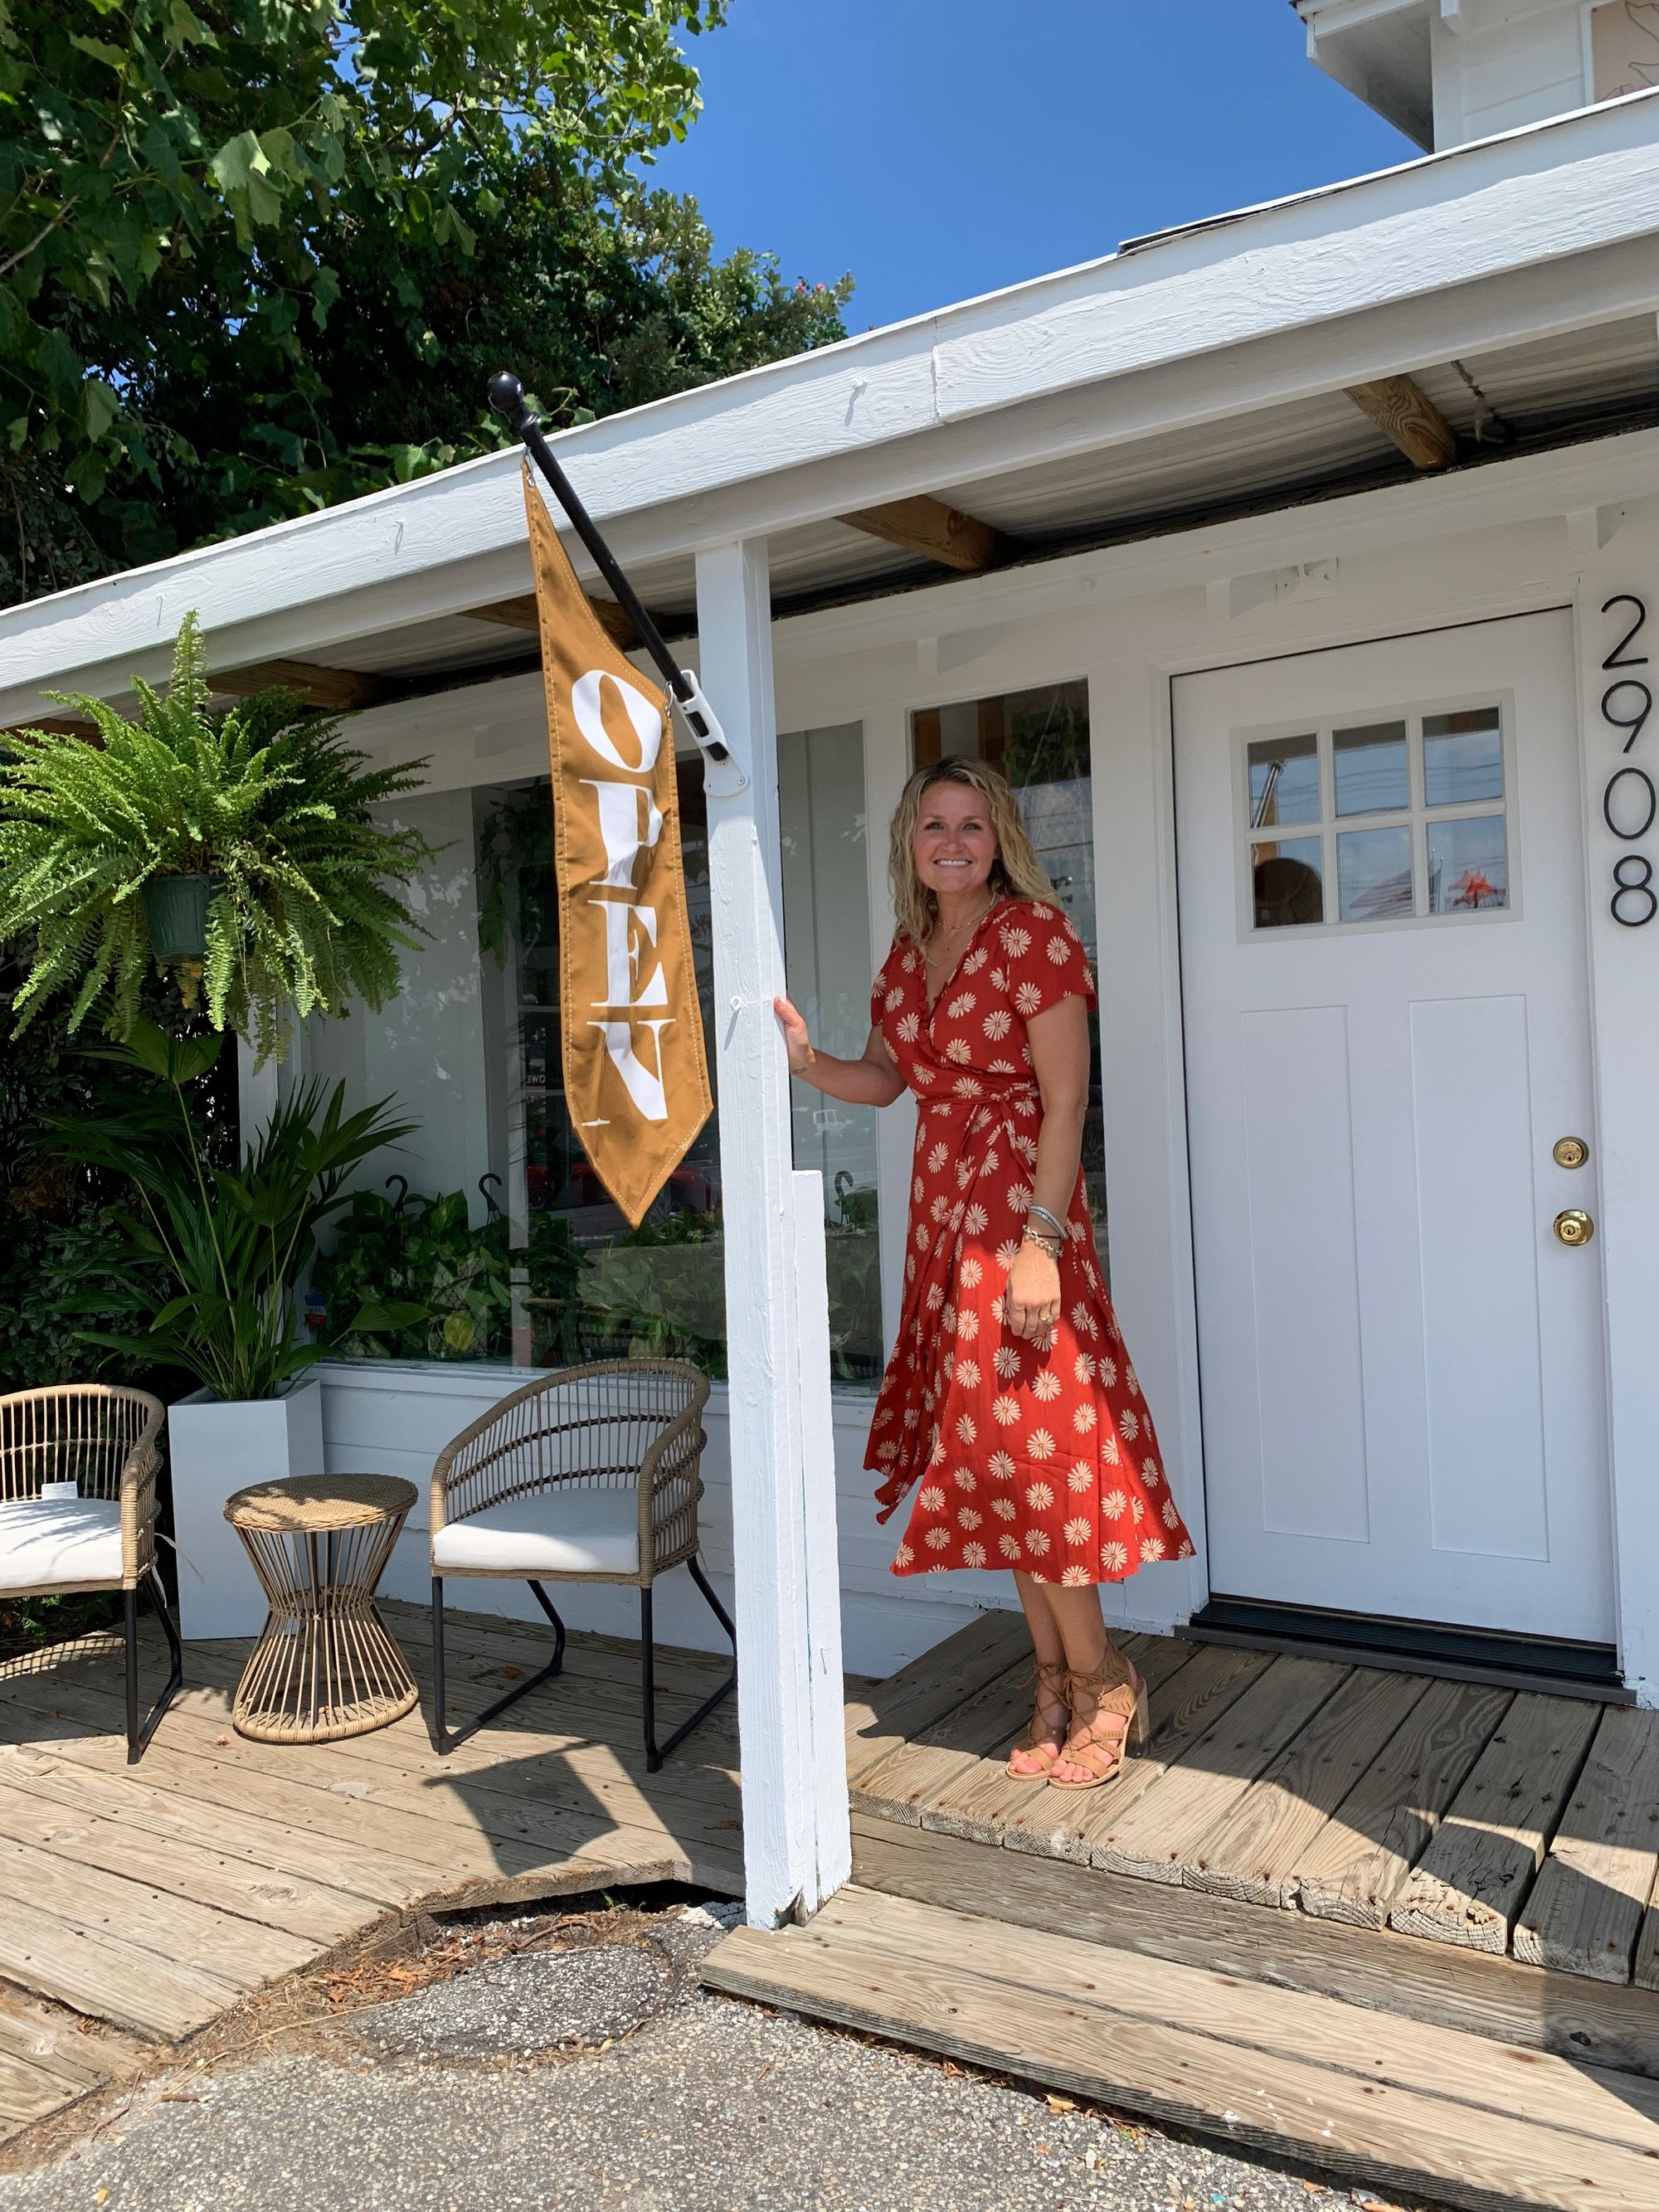 From Coachella flower installations to a beach bungalow flower shop - Innerbloom